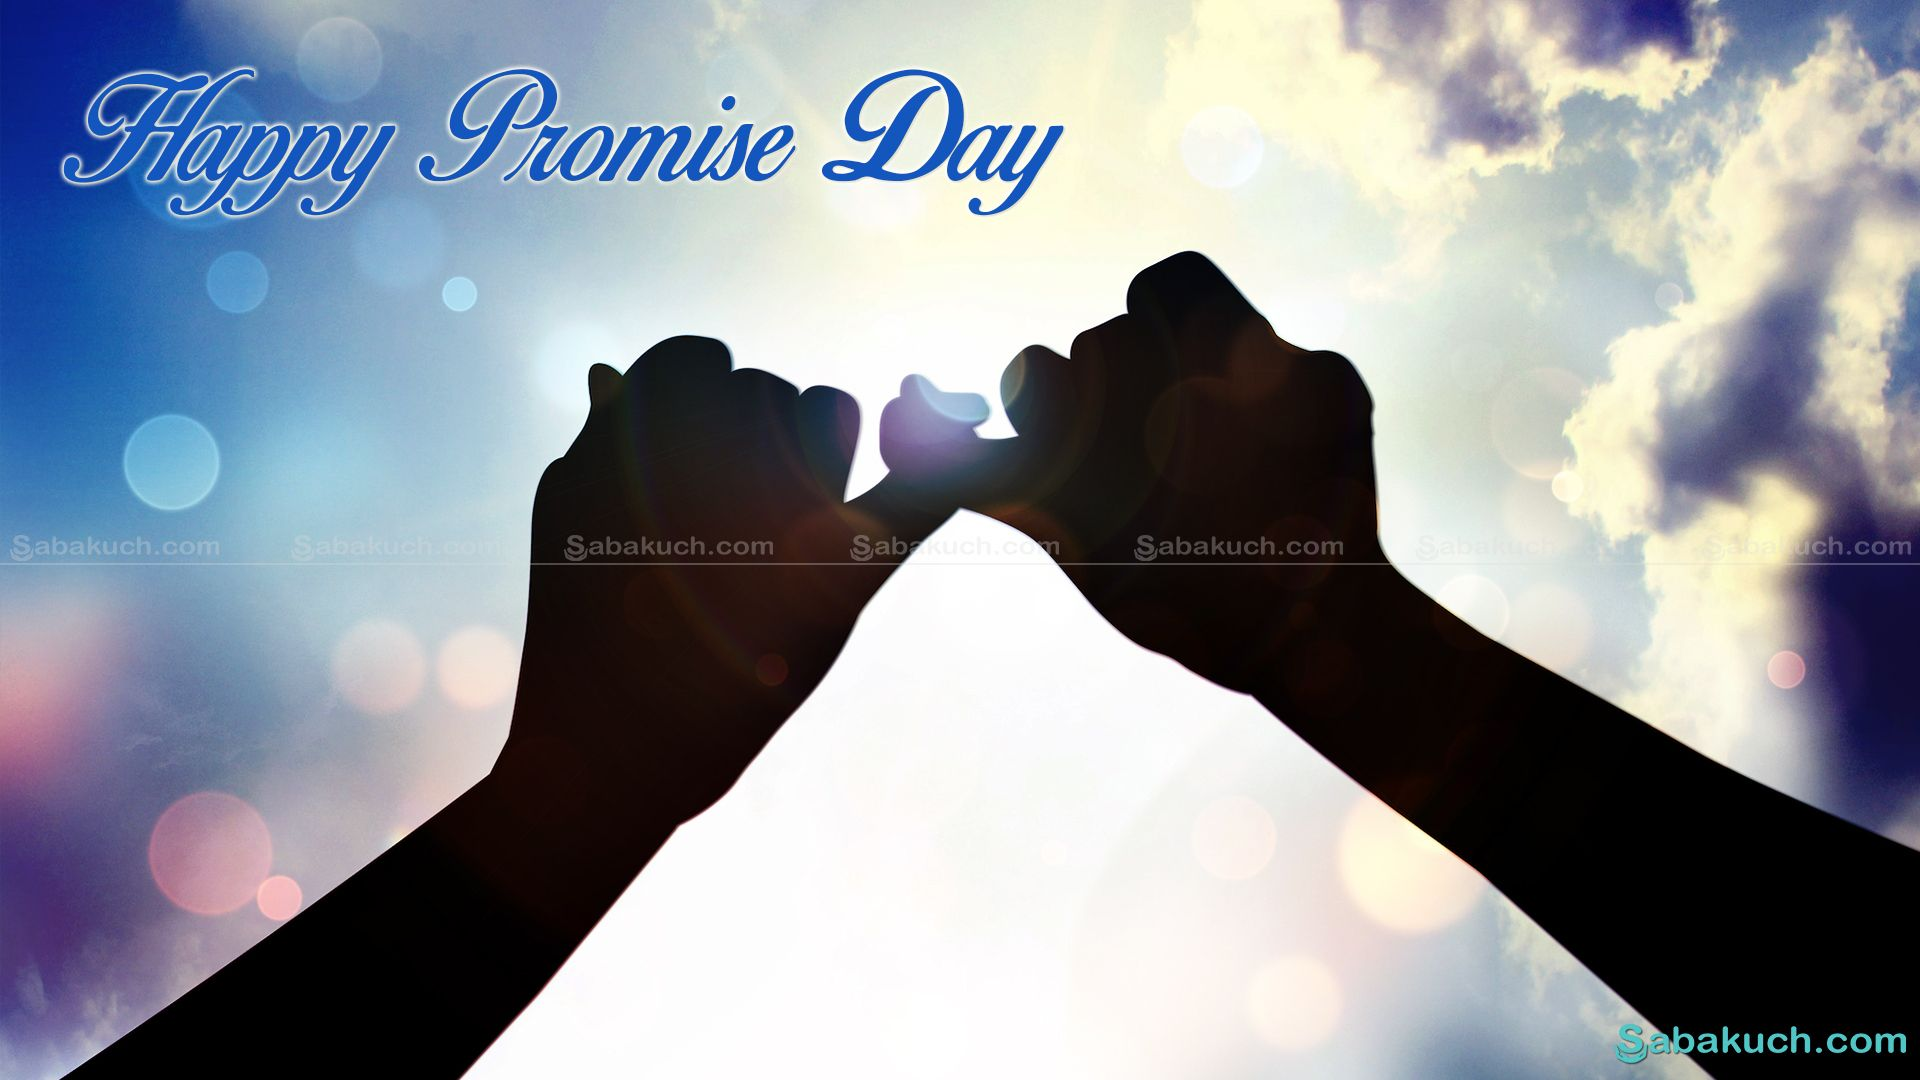 Happy Promise Day Quotes, Image, Wallpapers, Pictures, Photos